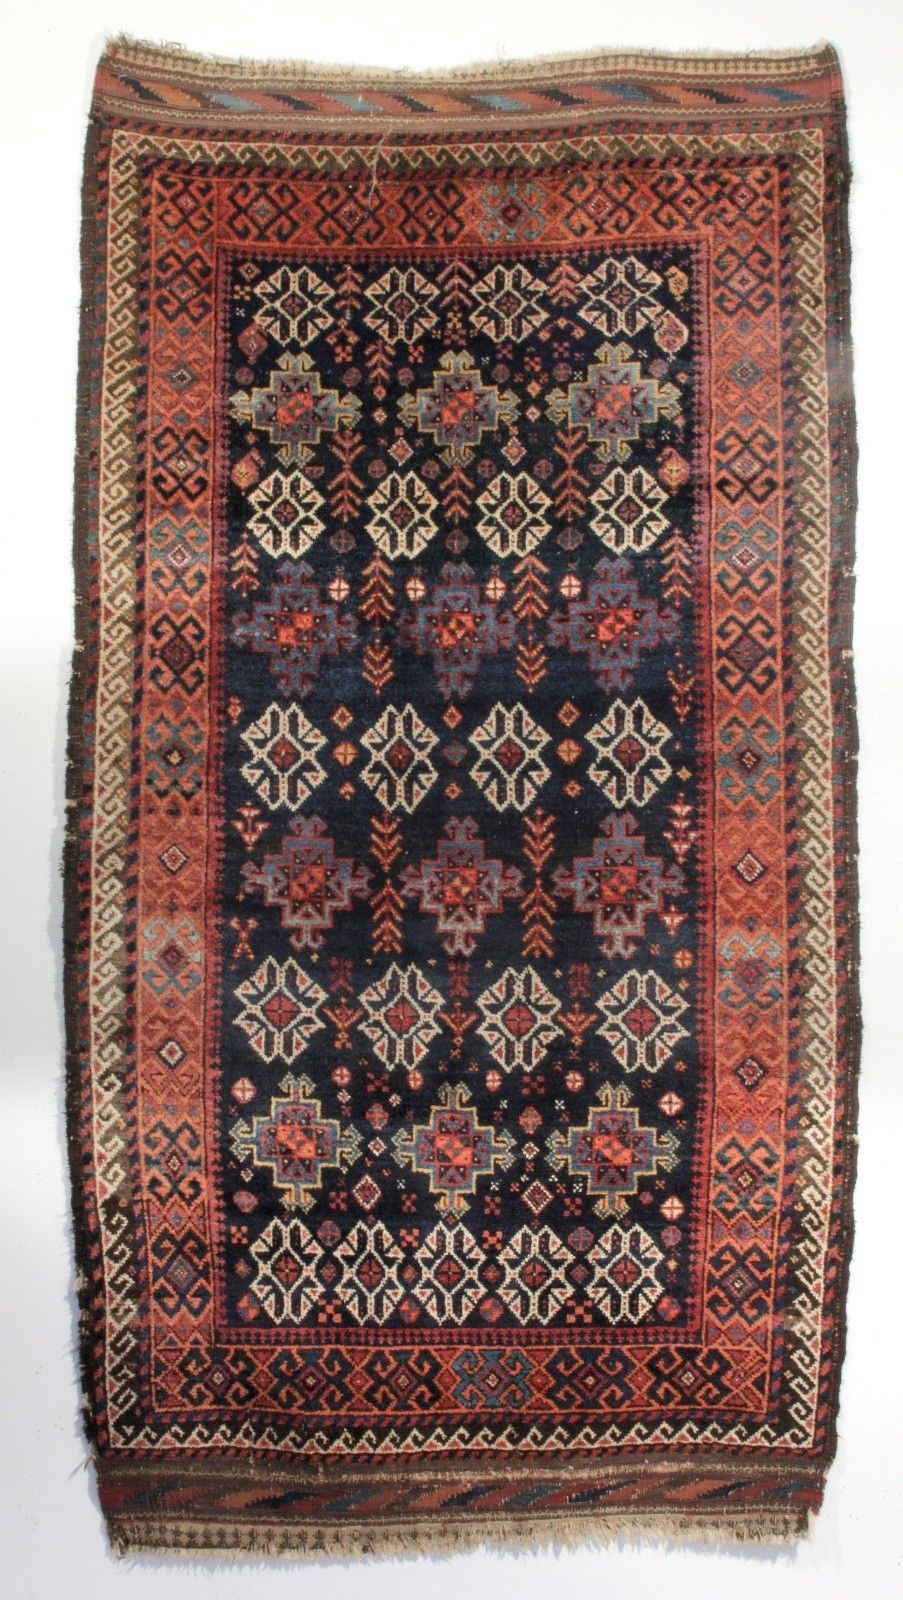 in Antiques, Rugs & Carpets